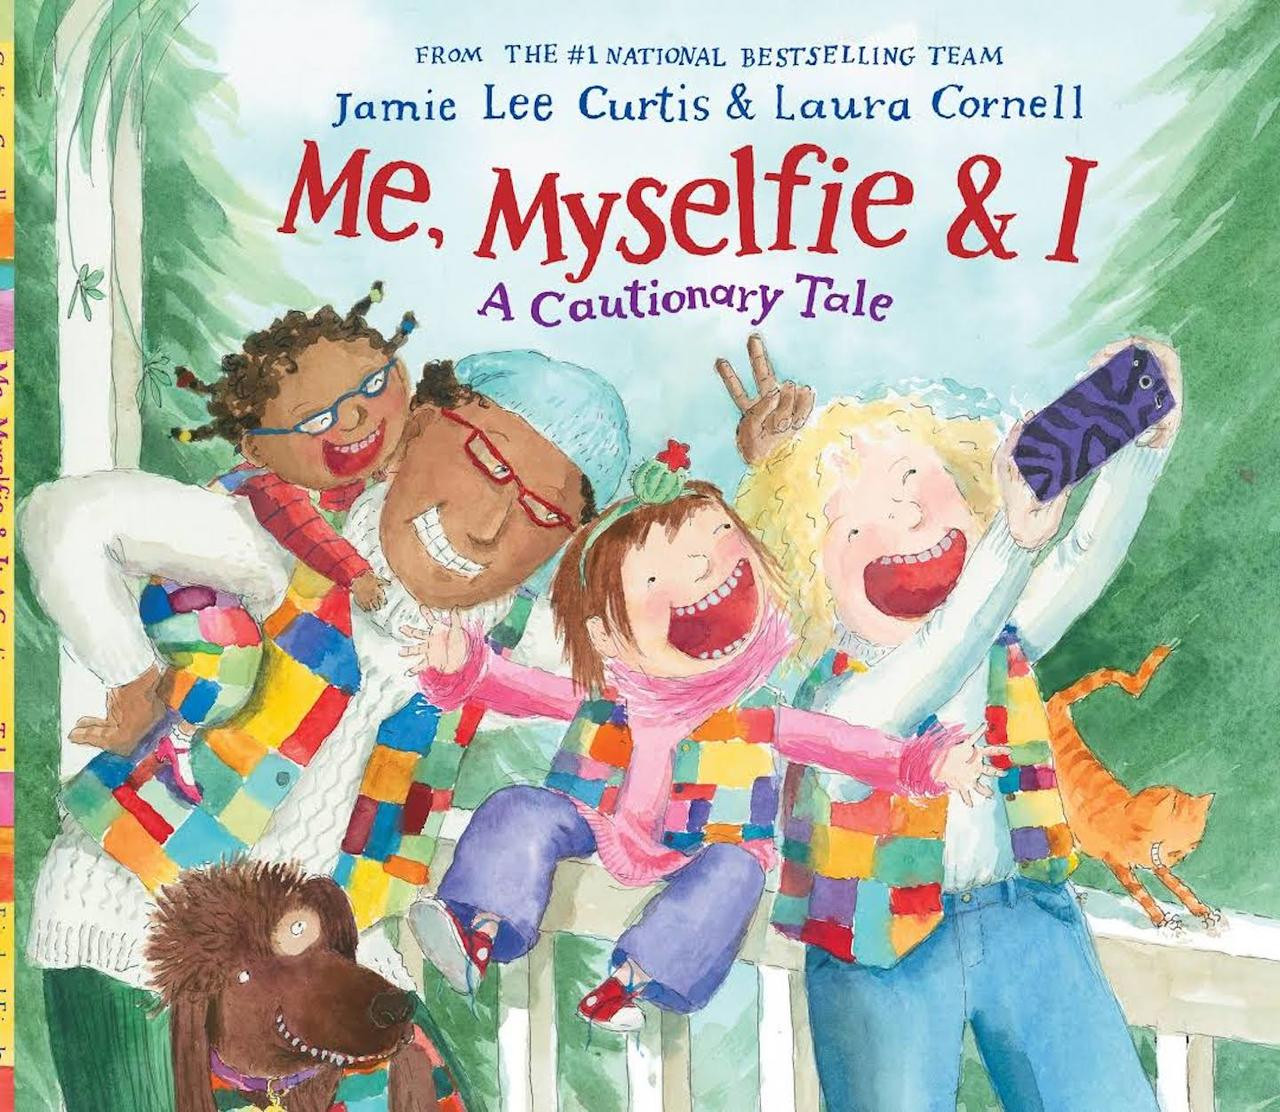 Me, Myselfie & I: A Cautionary Tale by Jamie Lee Curtis